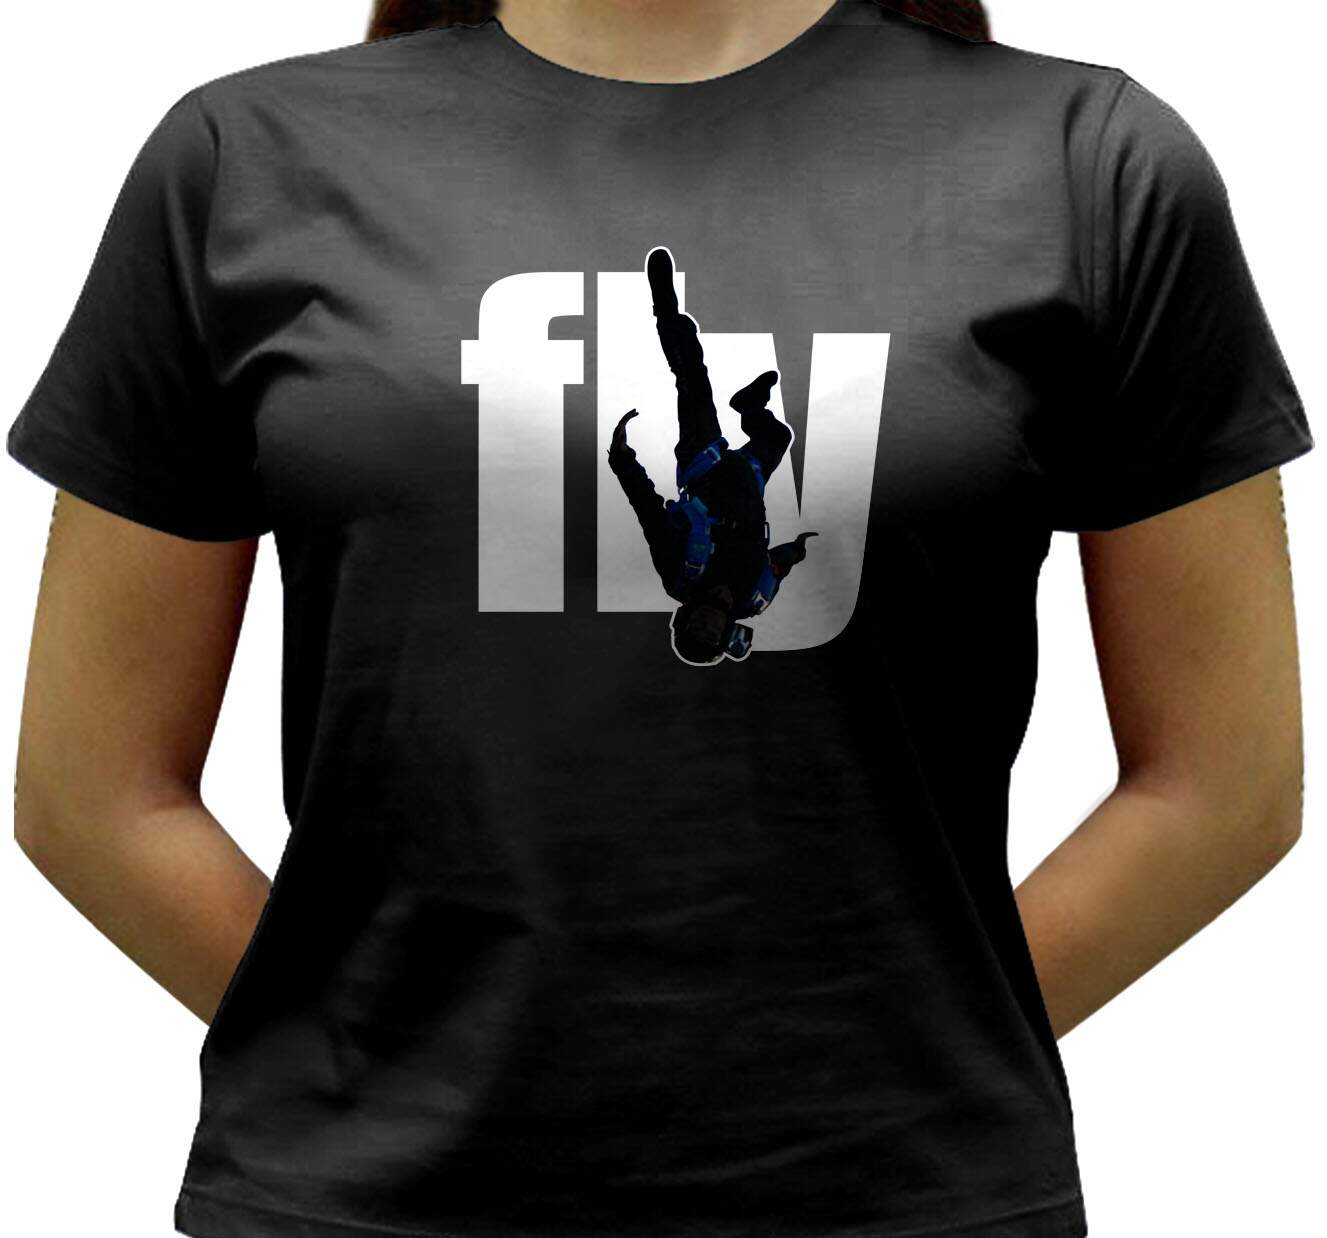 Camiseta Fly - Baby-look